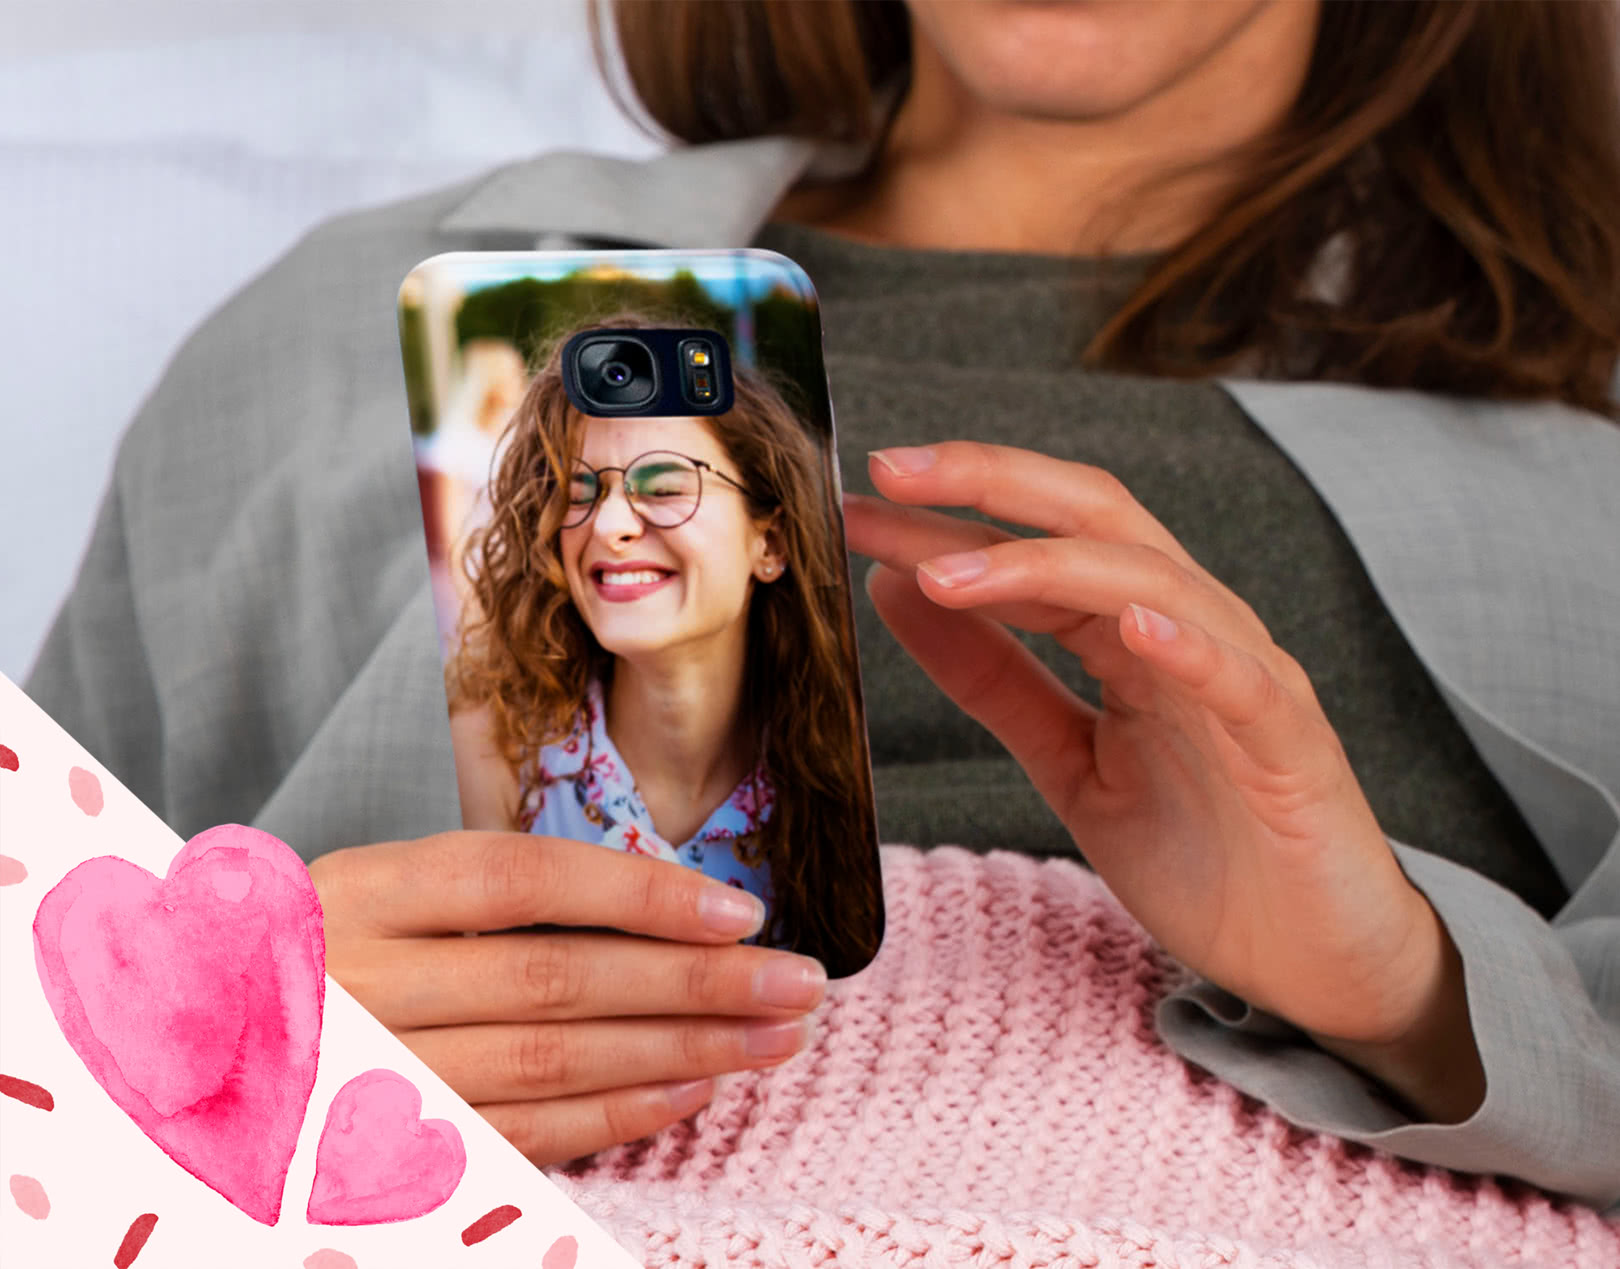 Customized Phone covers for valentine day gift